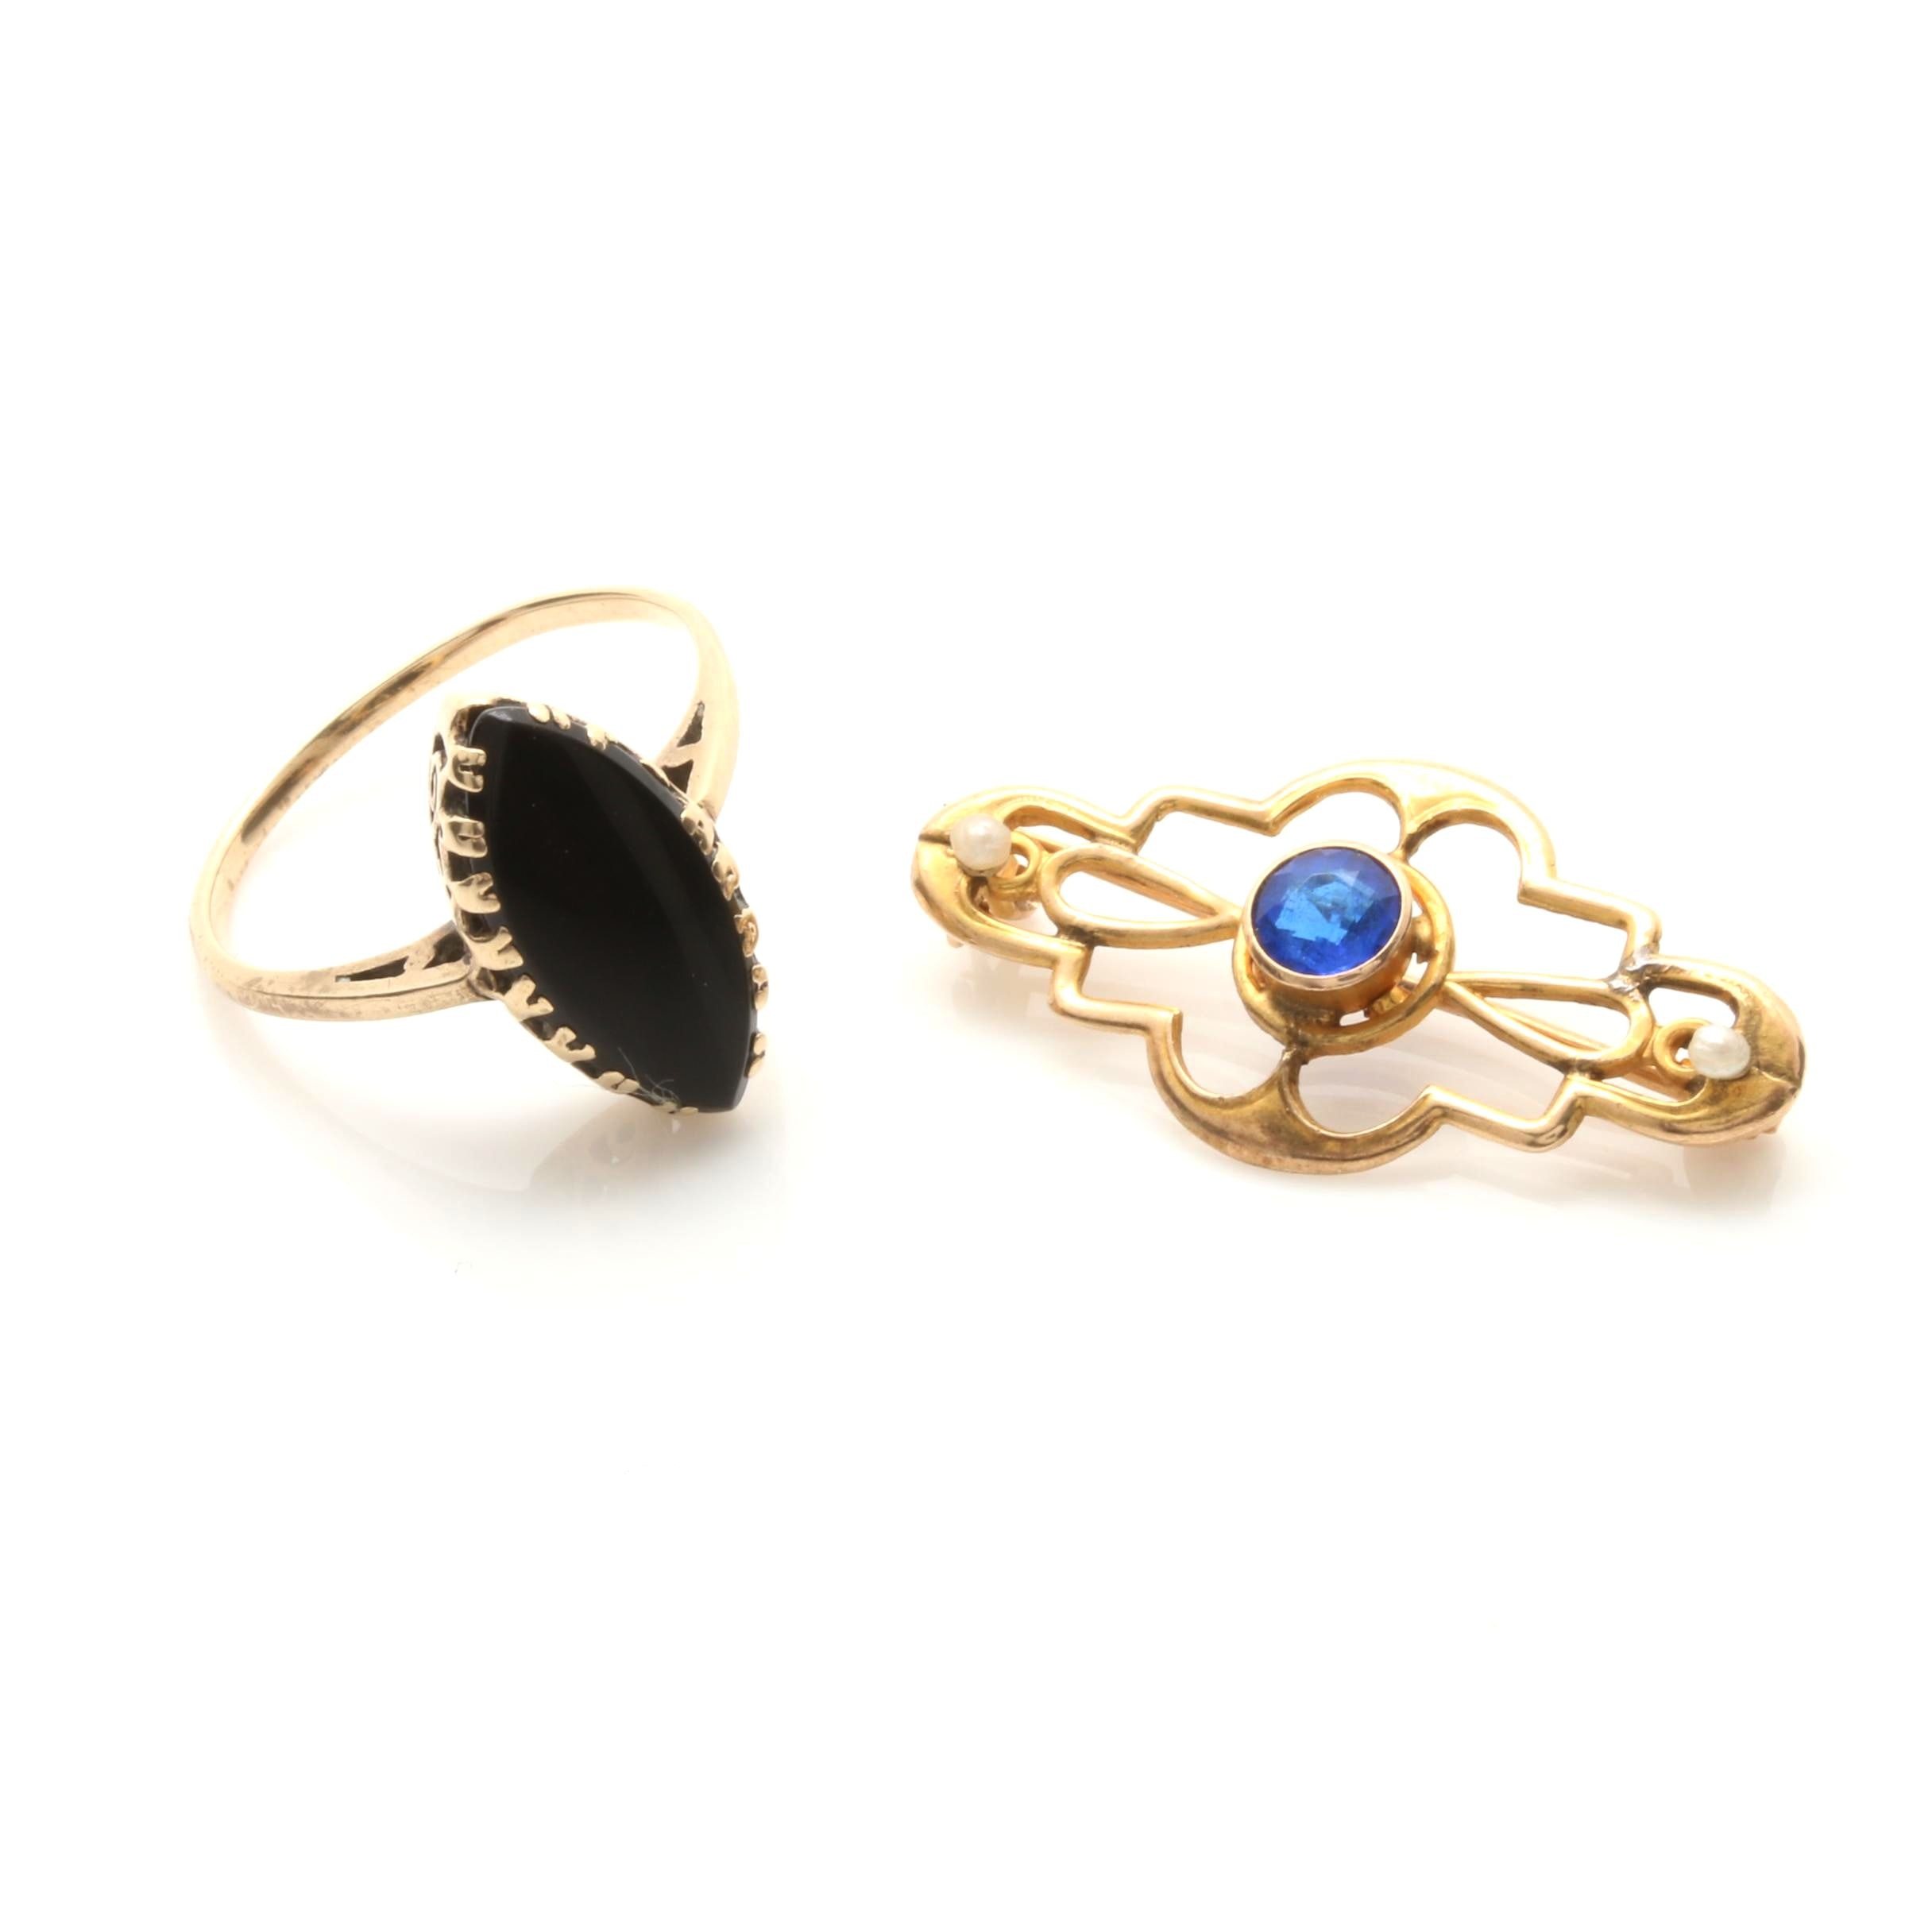 Antique 10K Yellow Gold Black Onyx Ring and Blue Glass Seed Pearl Brooch